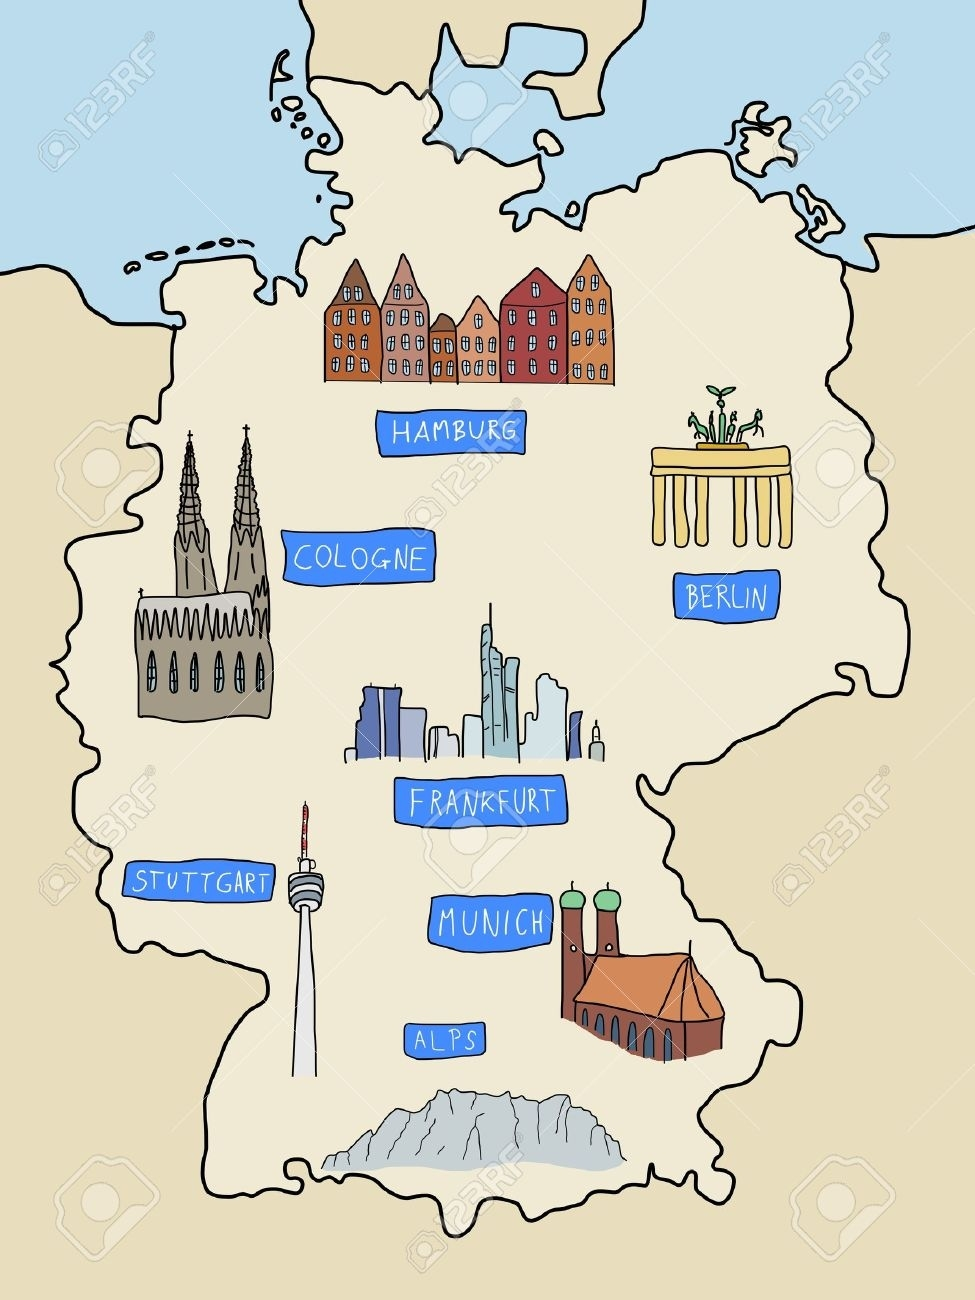 Germany - Famous Places: Berlin, Hamburg, Cologne, Frankfurt,.. with regard to German Alps Map